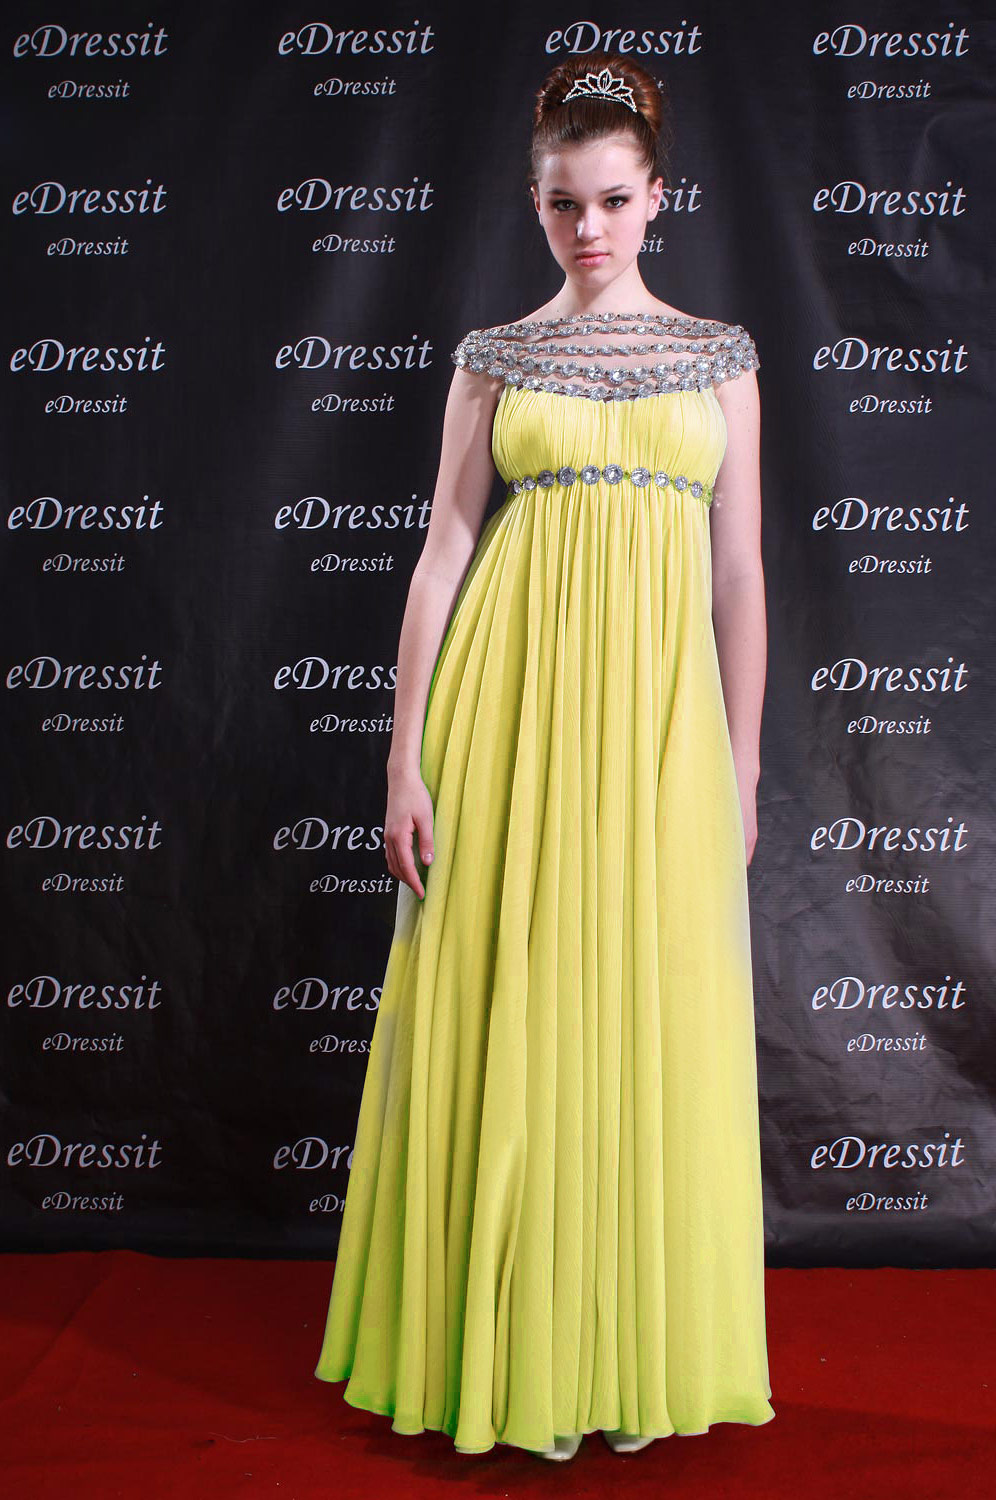 On sale !! eDressit Celebrity Sexy yellow  Prom Gown Evening Dress (00777335c)